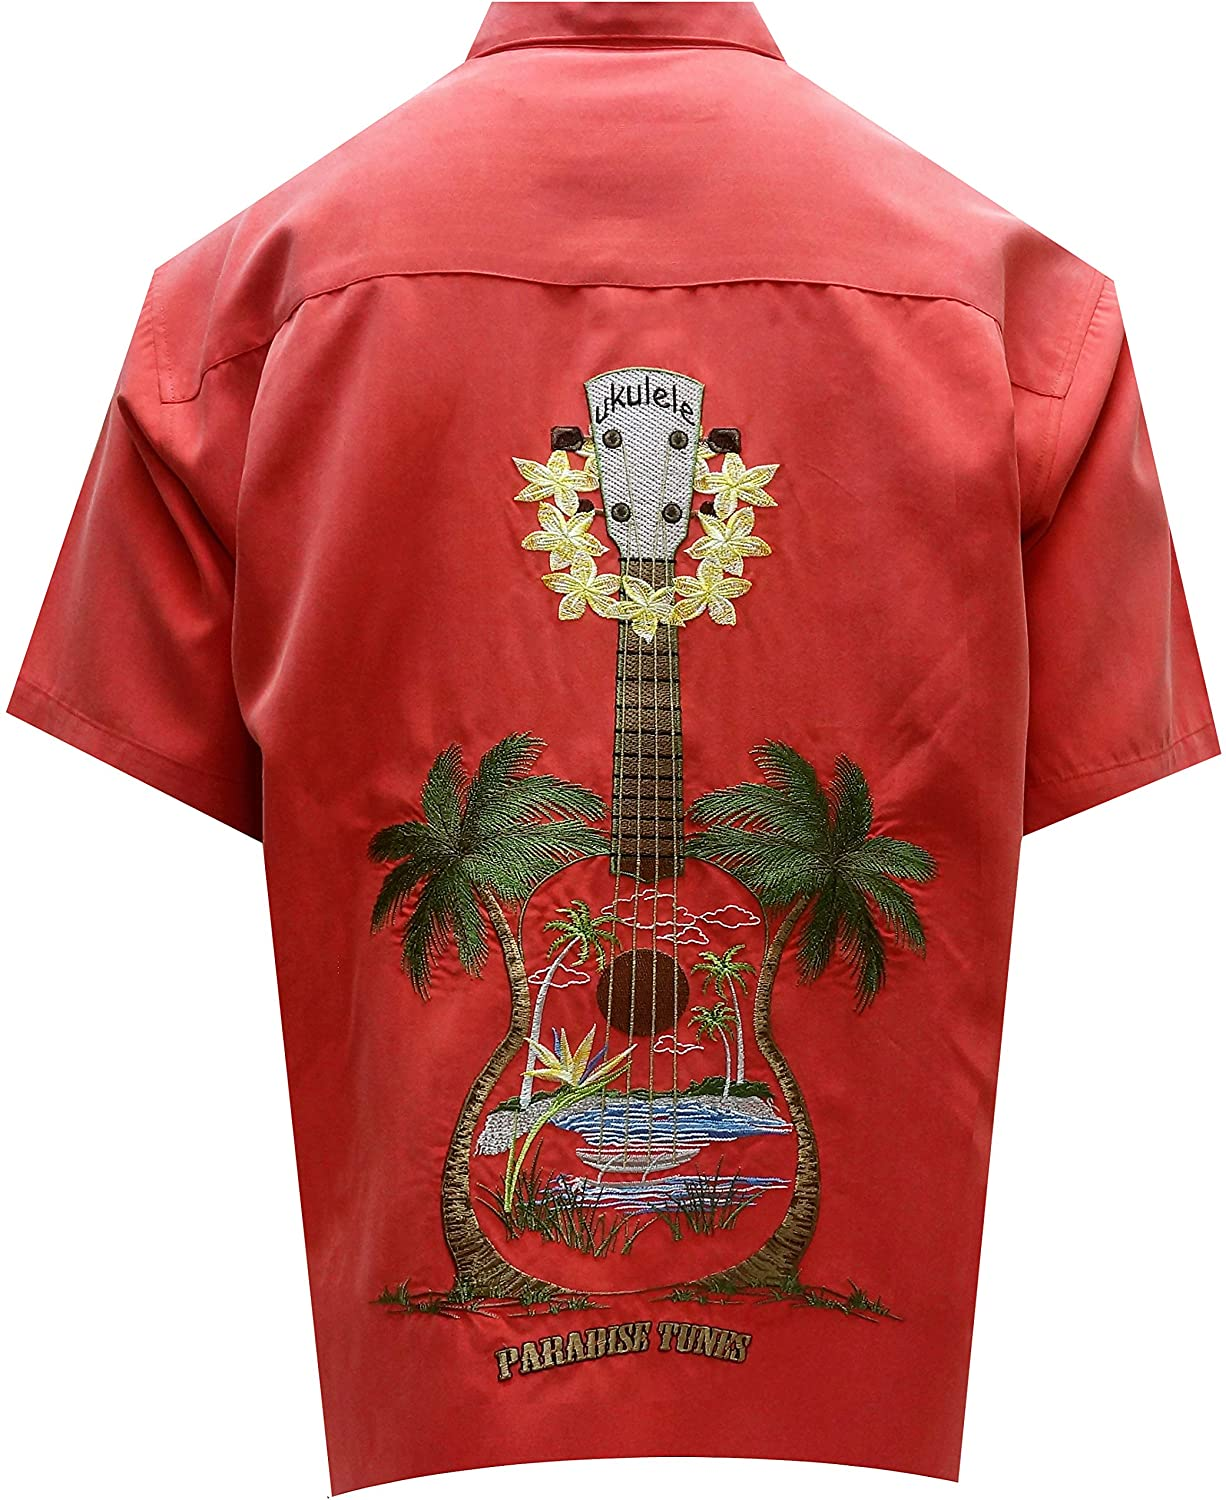 Bamboo Cay Men's Ukulele Island, Embroidered Tropical Style Button Shirt (3XL, Tomato)